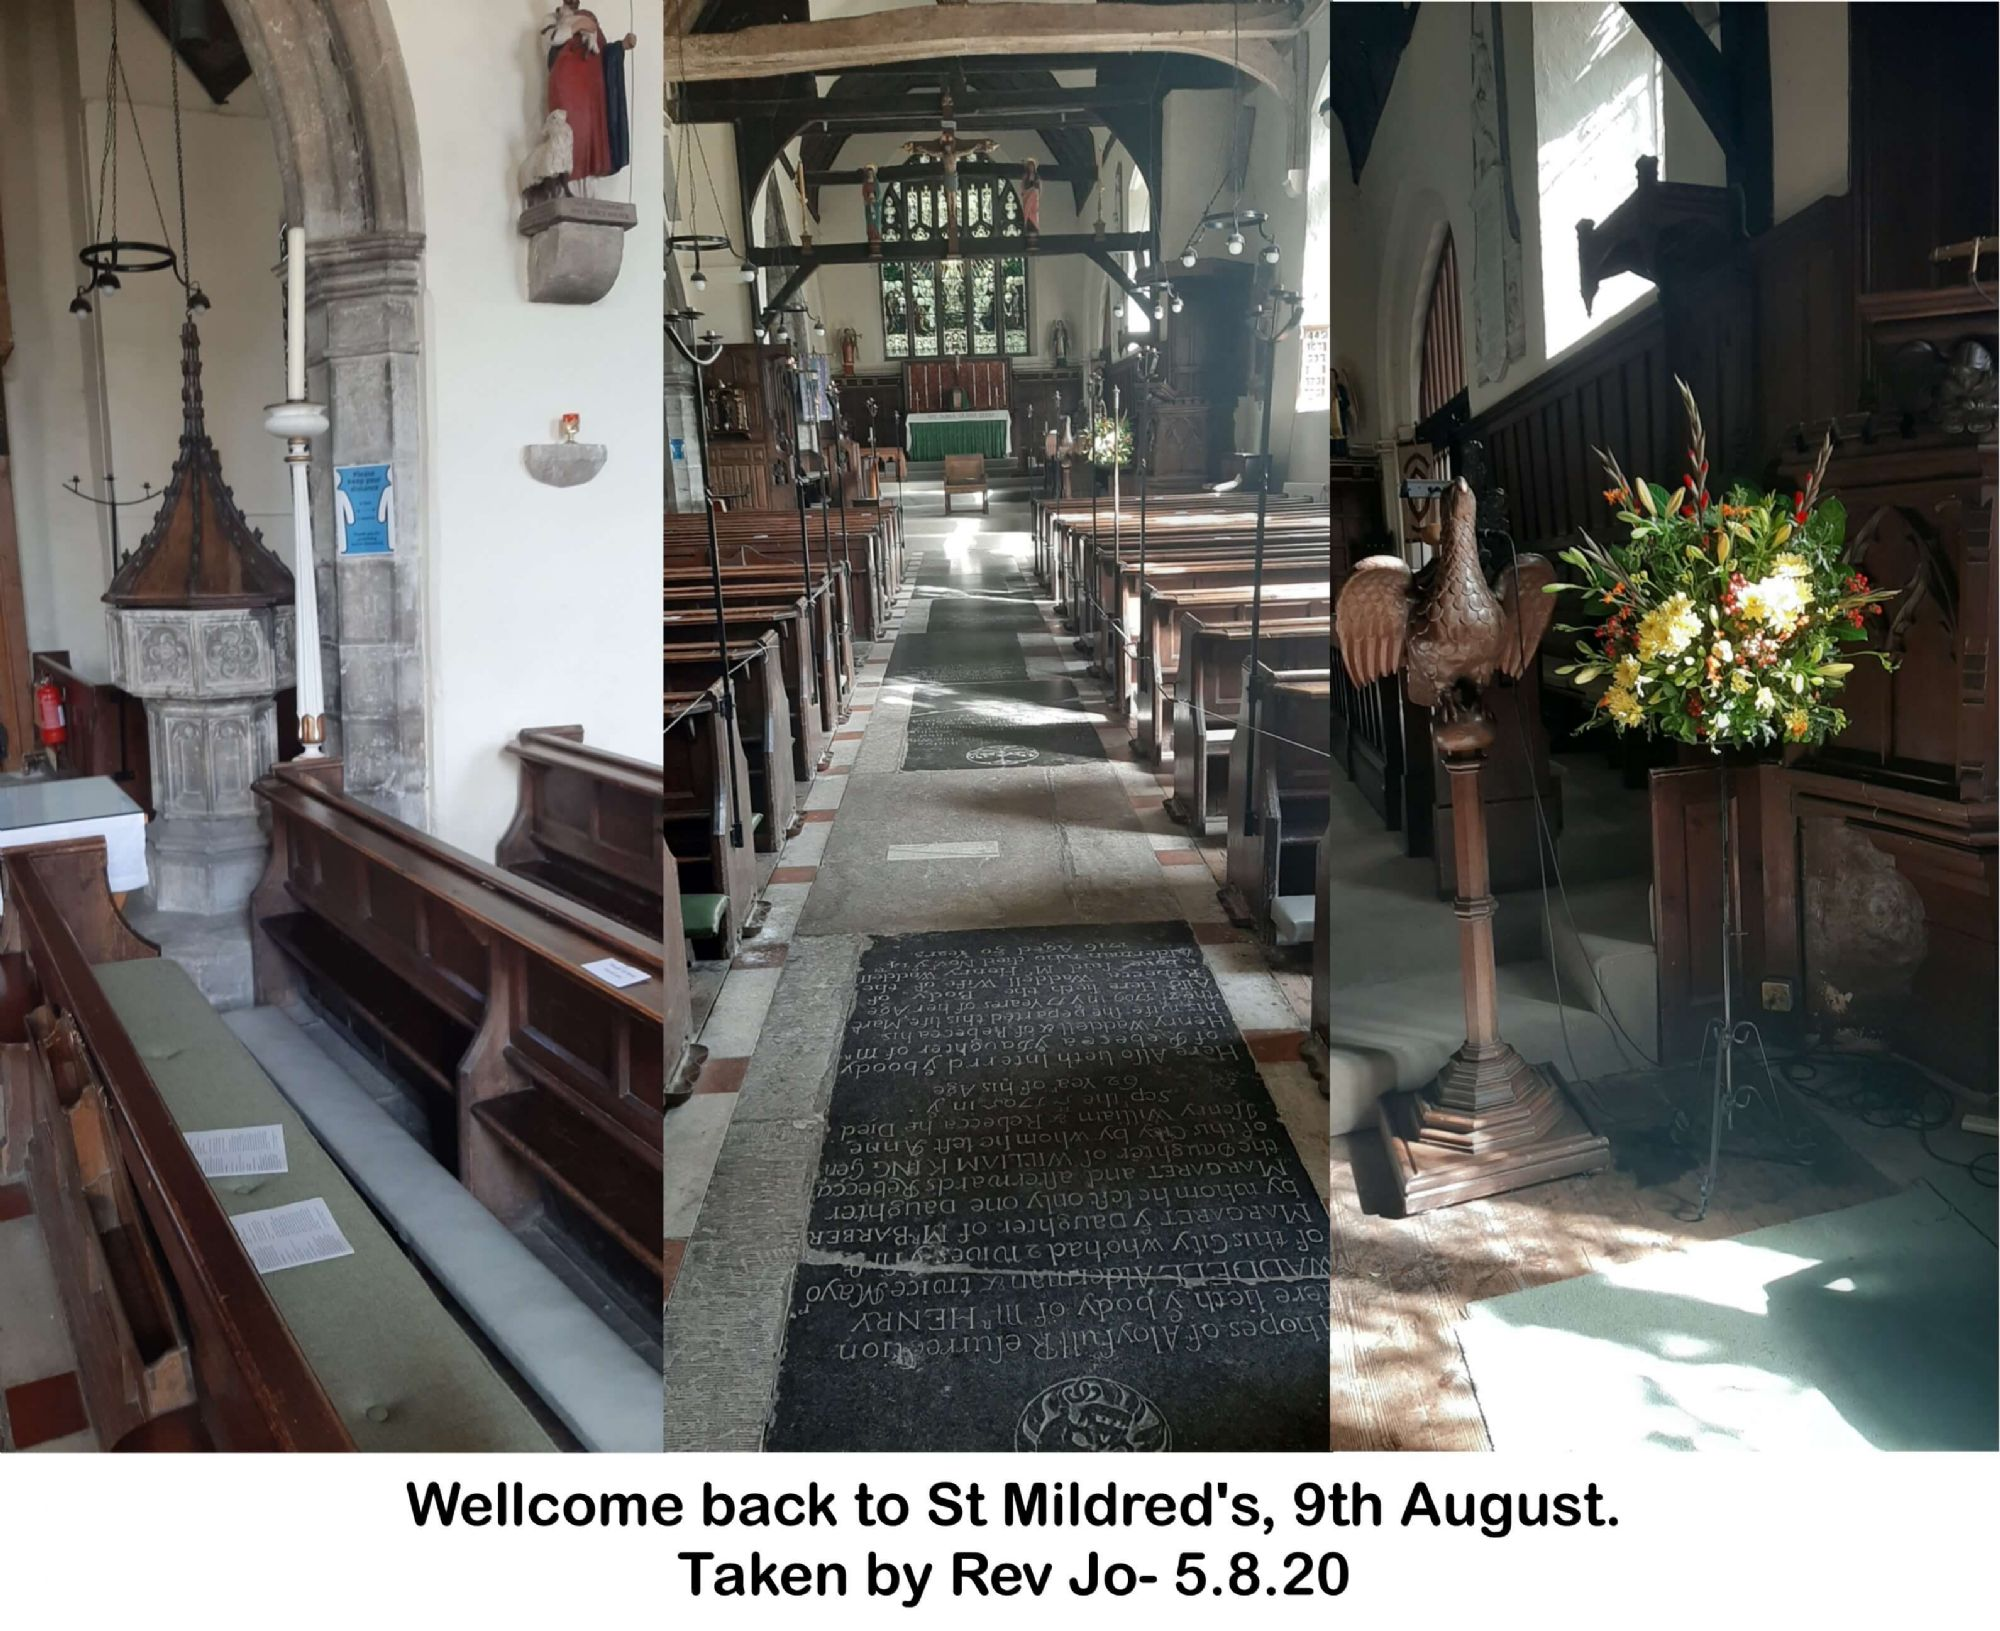 Wellcome back to St Mildred's, 9th August.